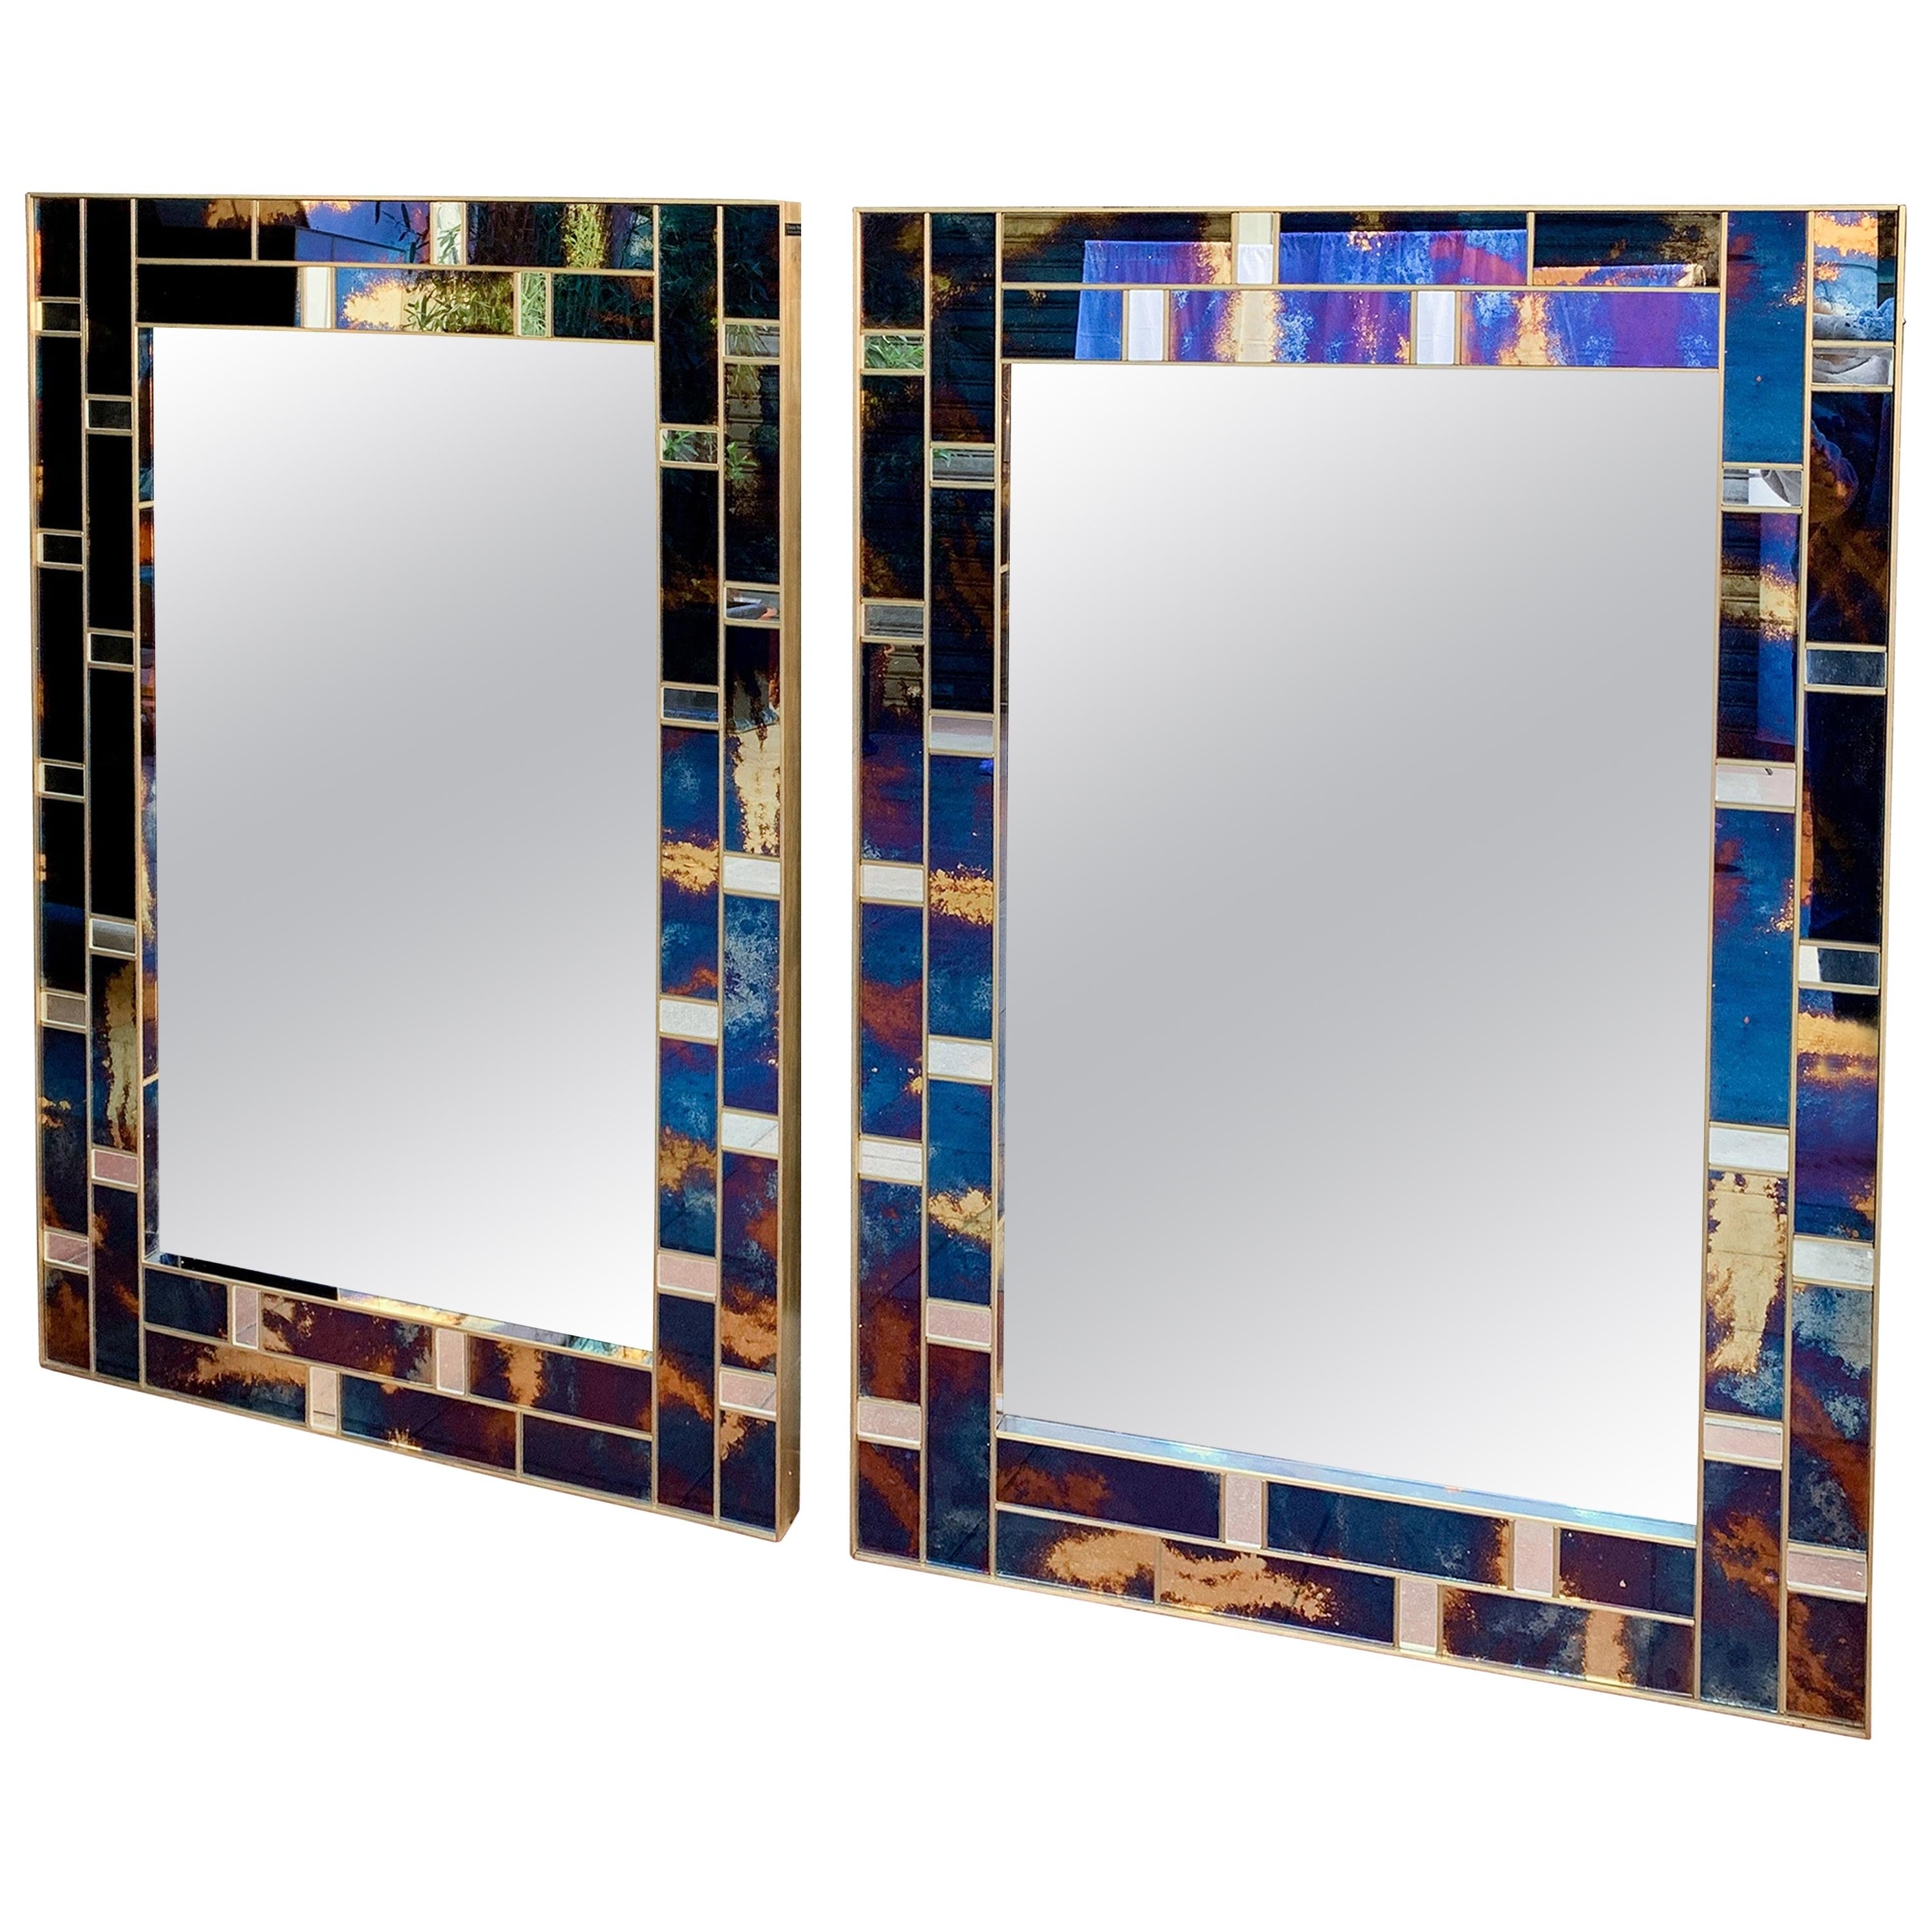 1 Mirror Surrounded with Tinted Glass